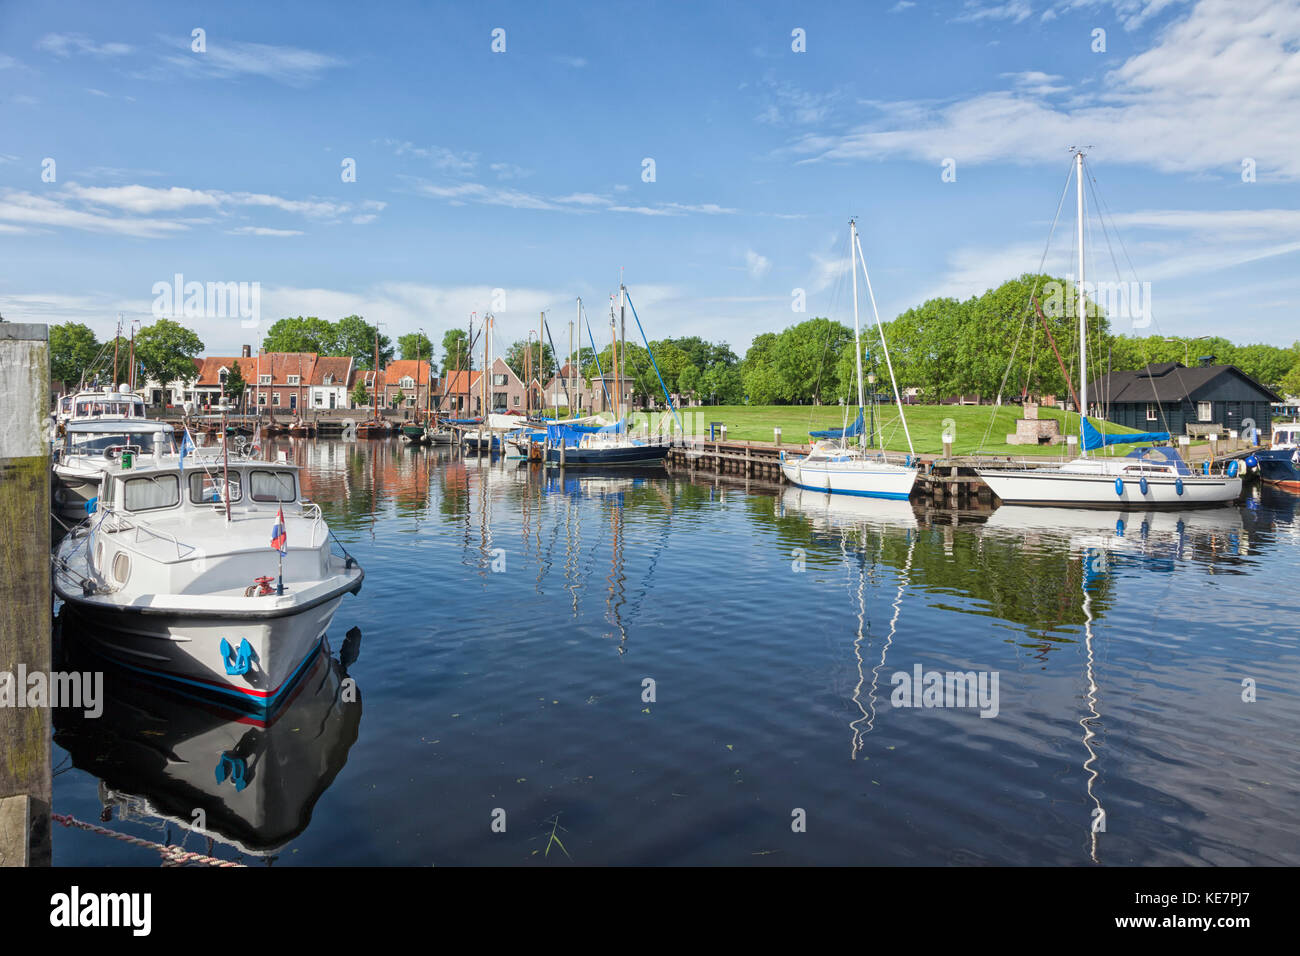 Harbor of Elburg, The Netherlands - Stock Image